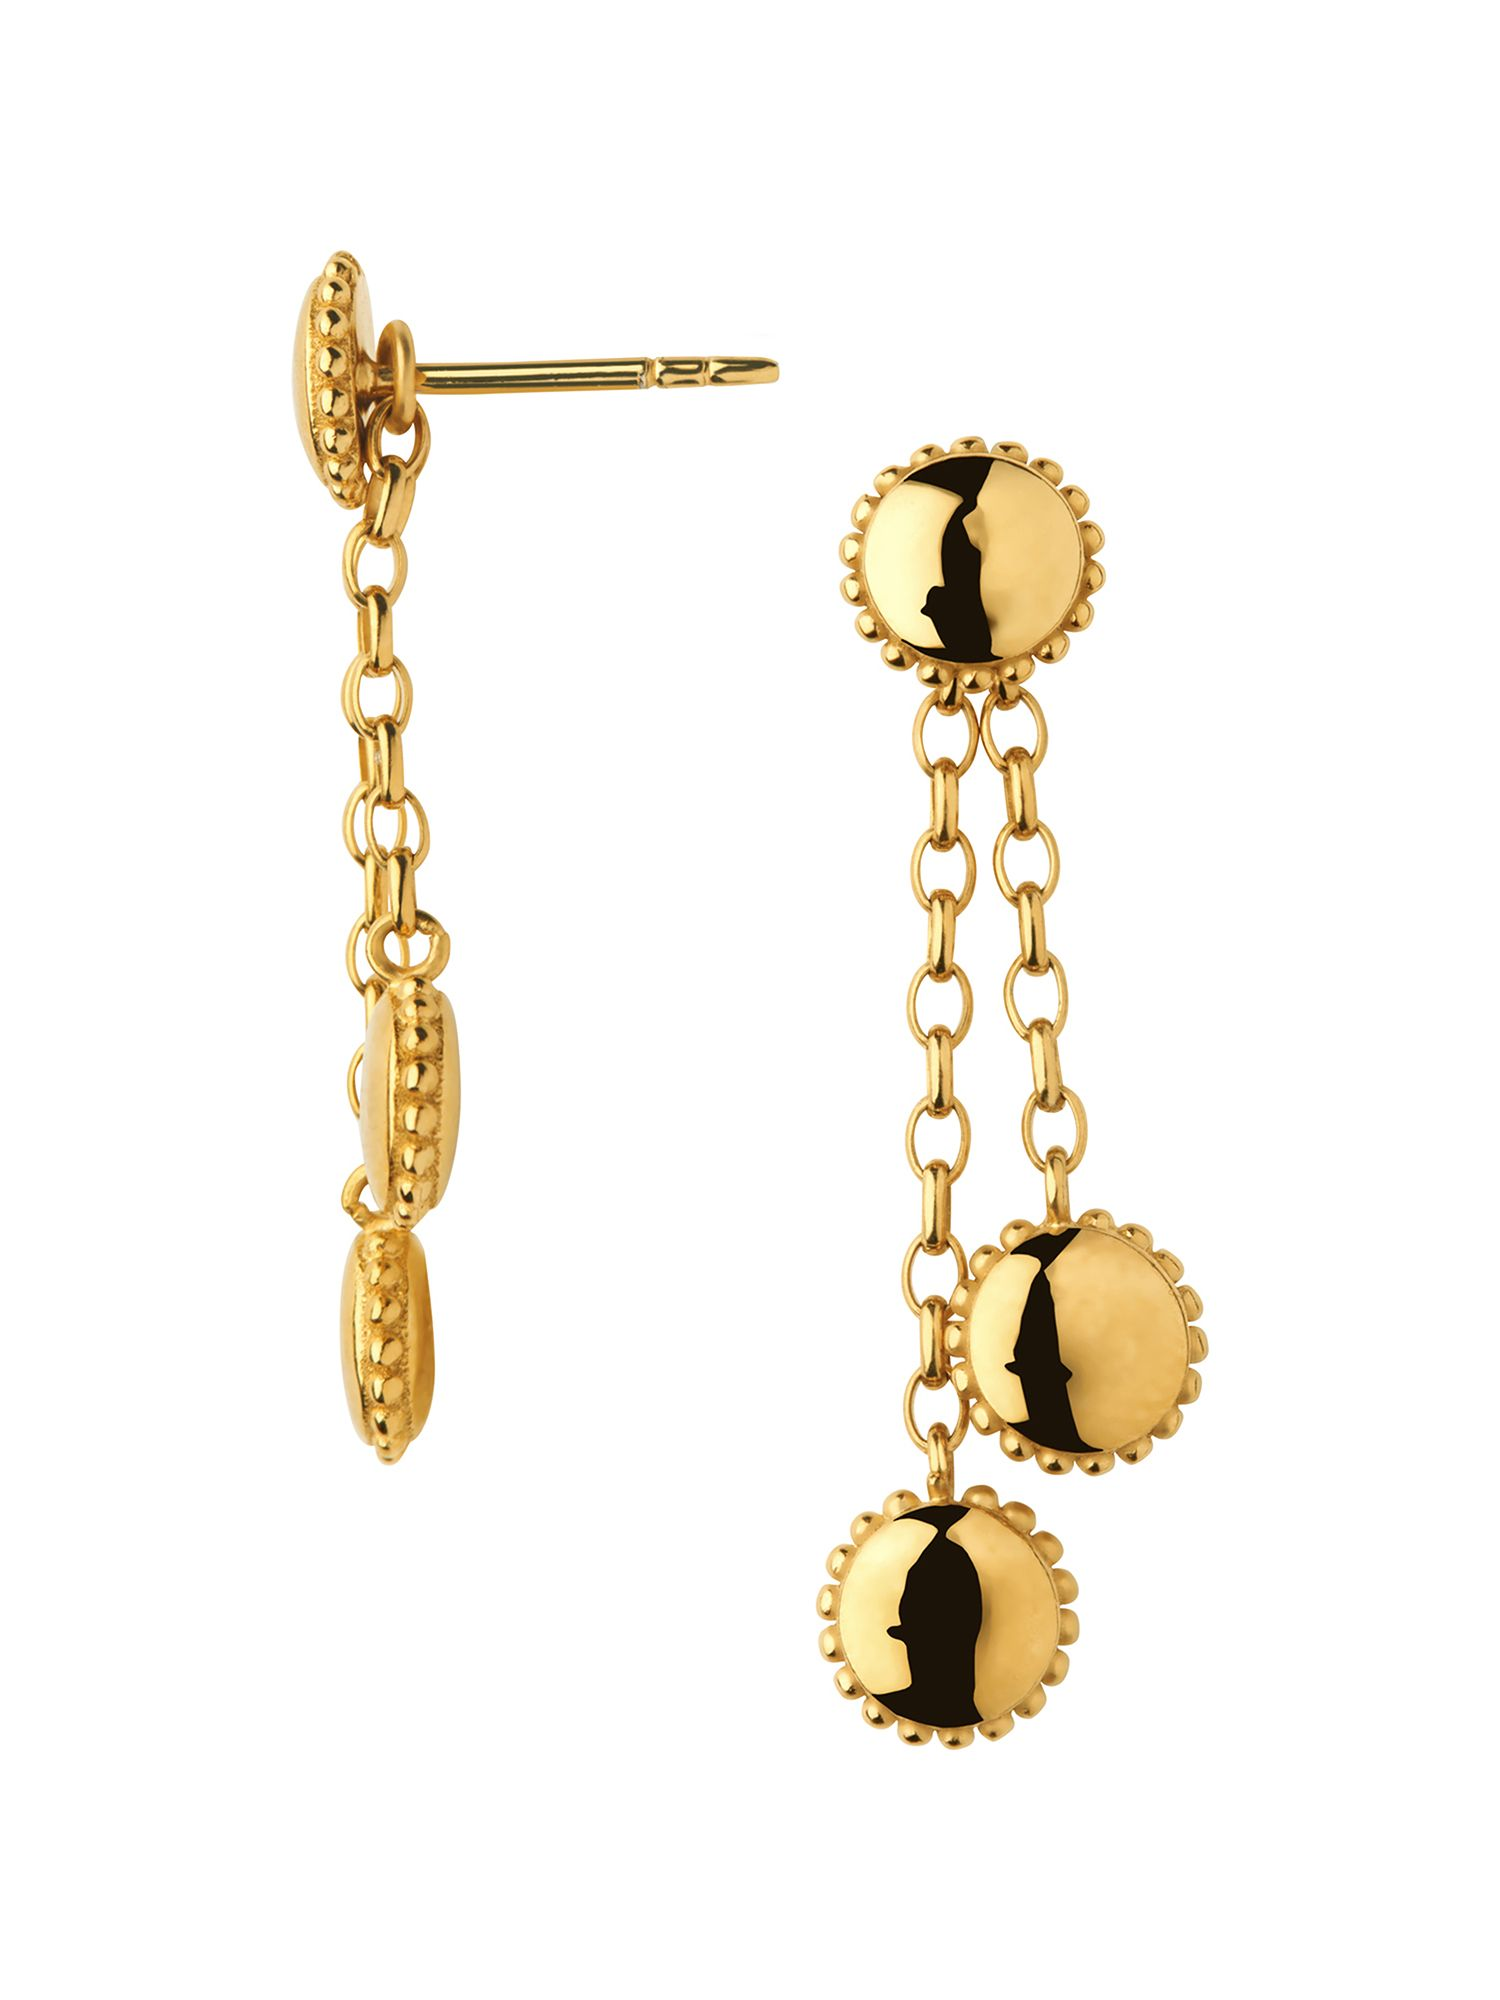 Links of London Amulet 18kt gold vermeil drop earrings, N/A